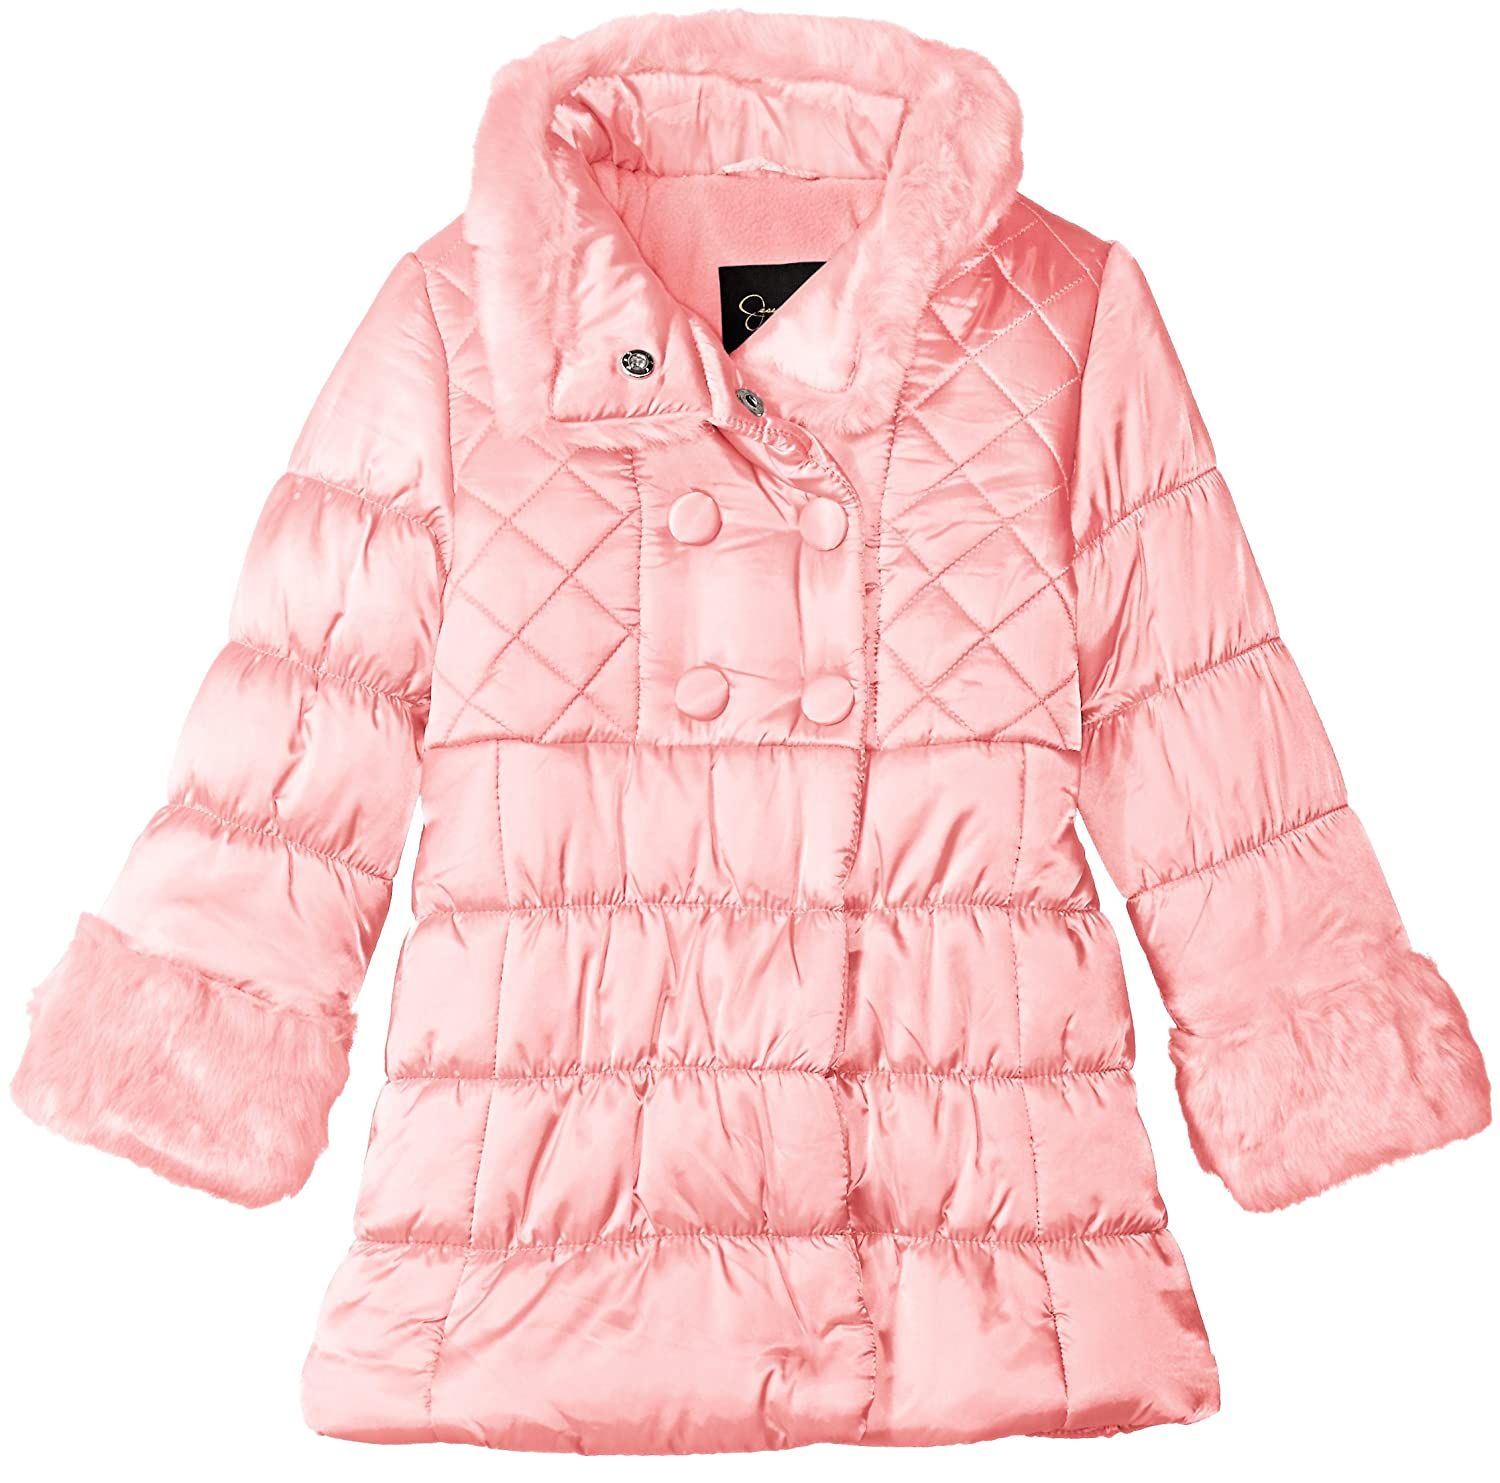 Jessica Simpson Girls' Double Breasted Quilted Puffer Coat 216632